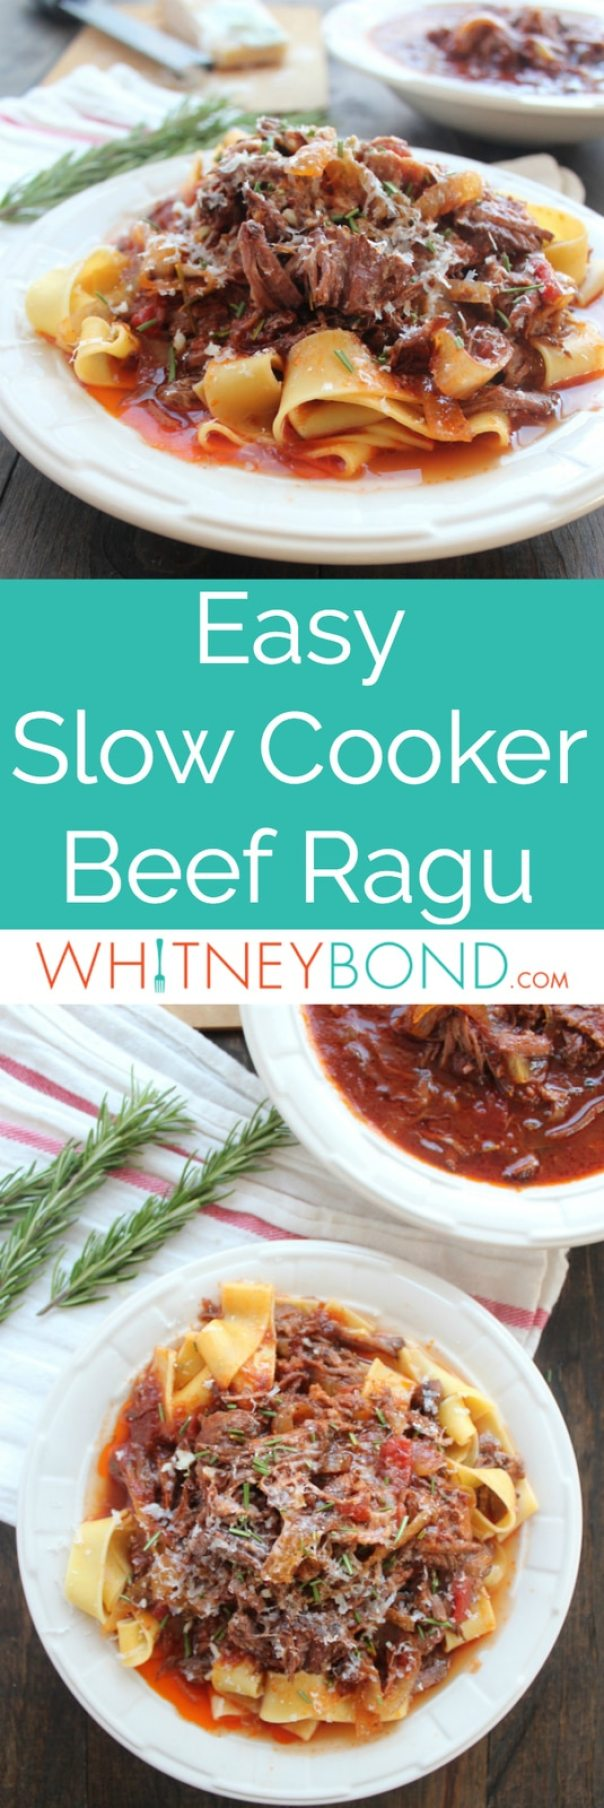 This slow cooked gluten free beef ragu recipe has a ton of flavor with only a few, simple ingredients, perfect served with pasta or polenta!